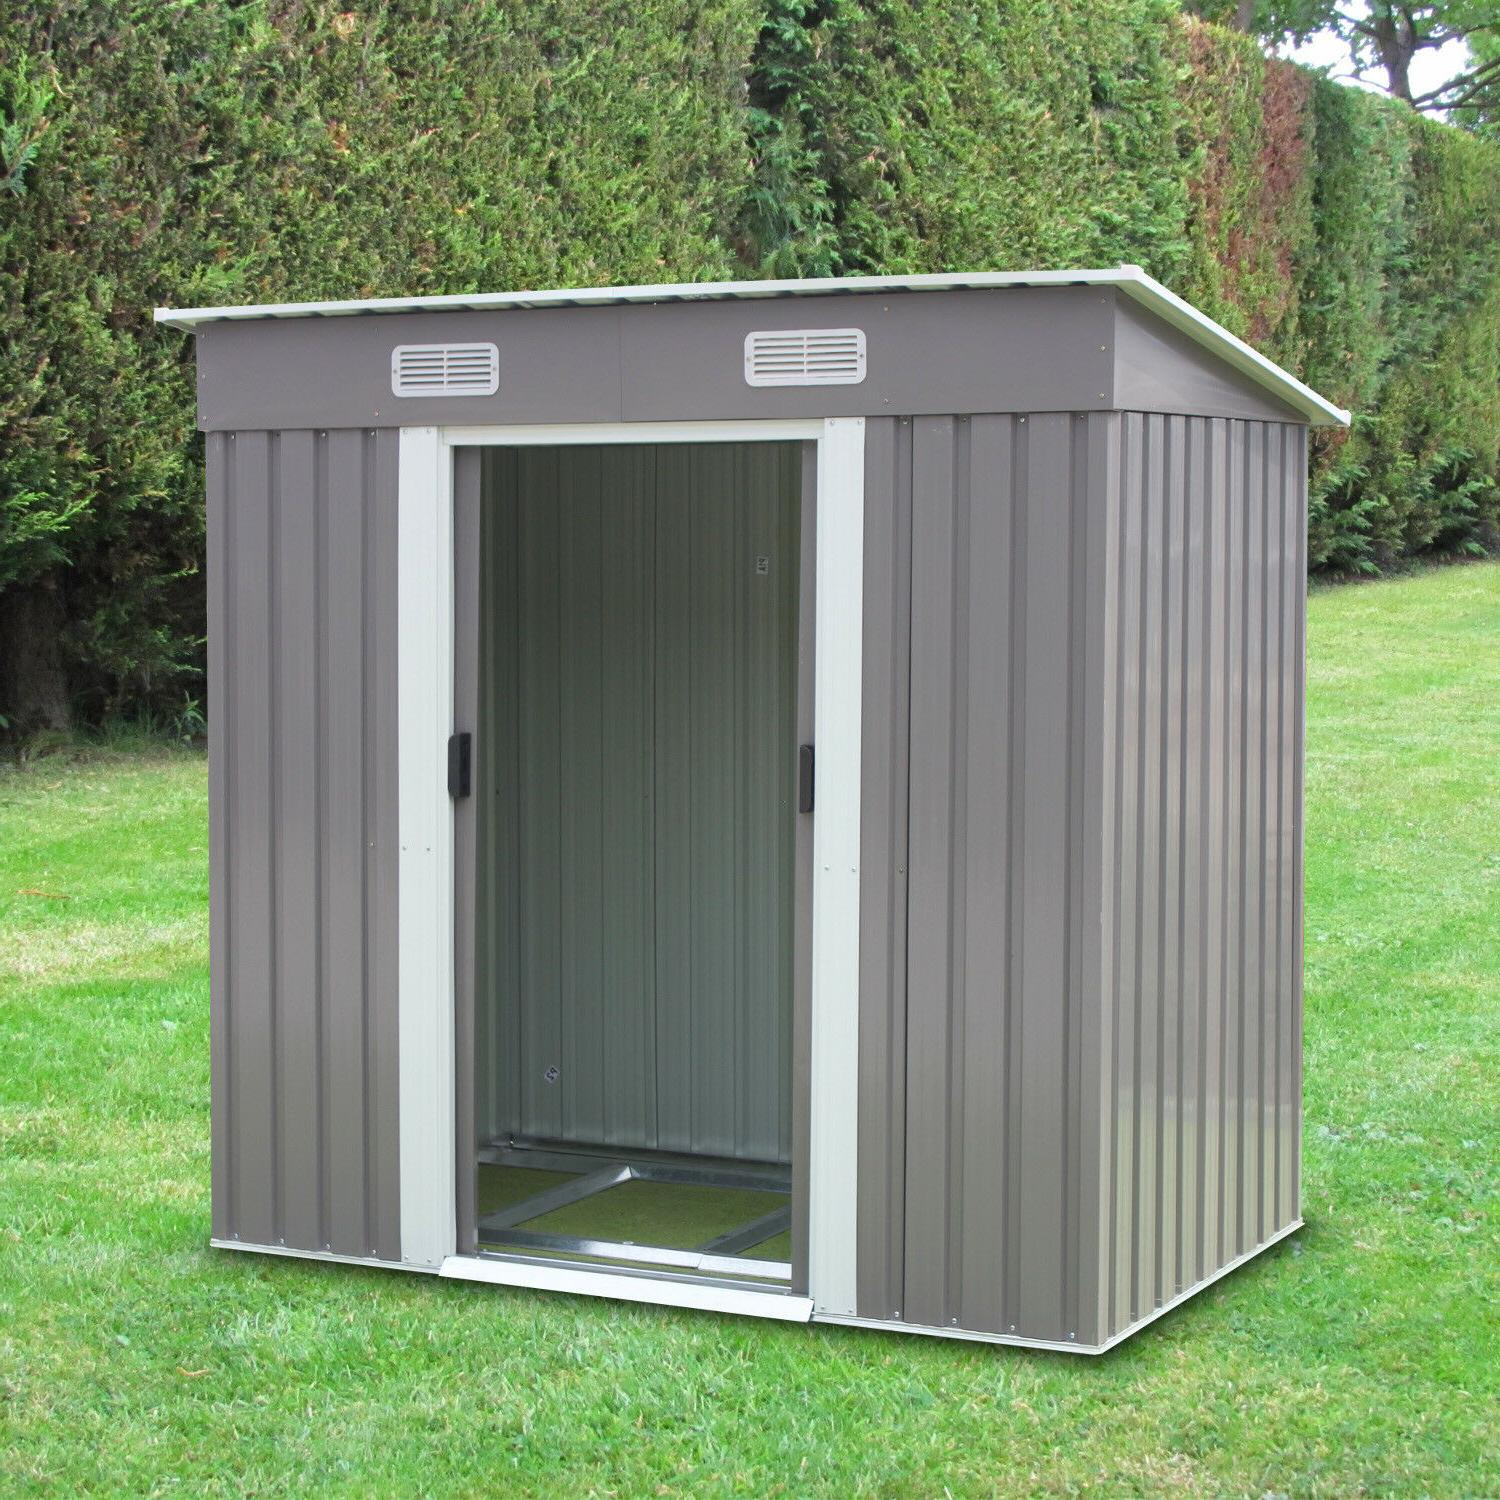 6 x 4 outdoor storage utility shed